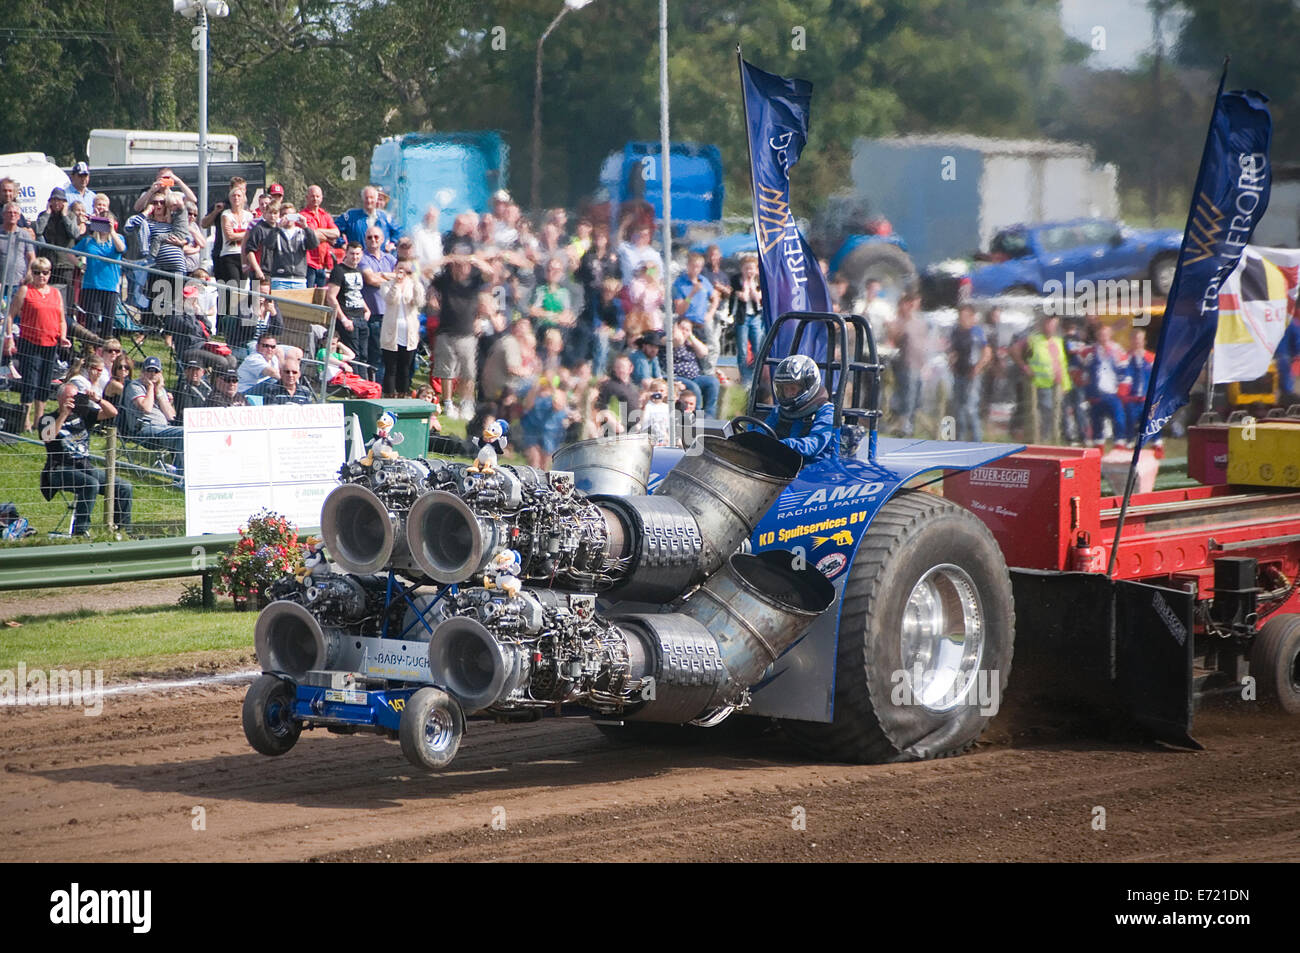 Four Engine Tractor : Tractor pulling puller with jest engines pullers four